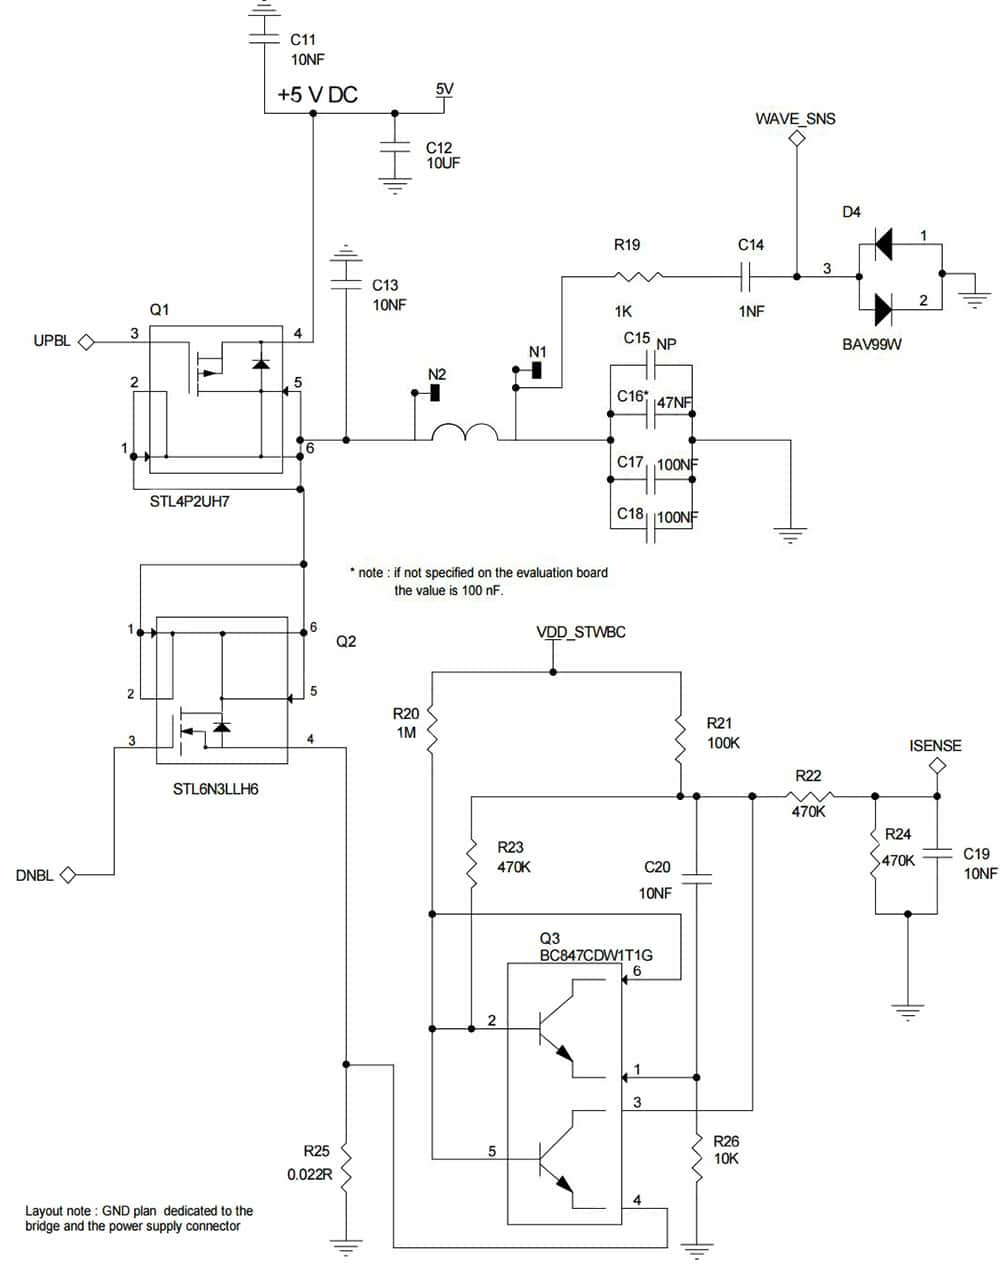 hight resolution of diagram of half bridge topology for the stmicroelectronics stwbc wa transmitter click for